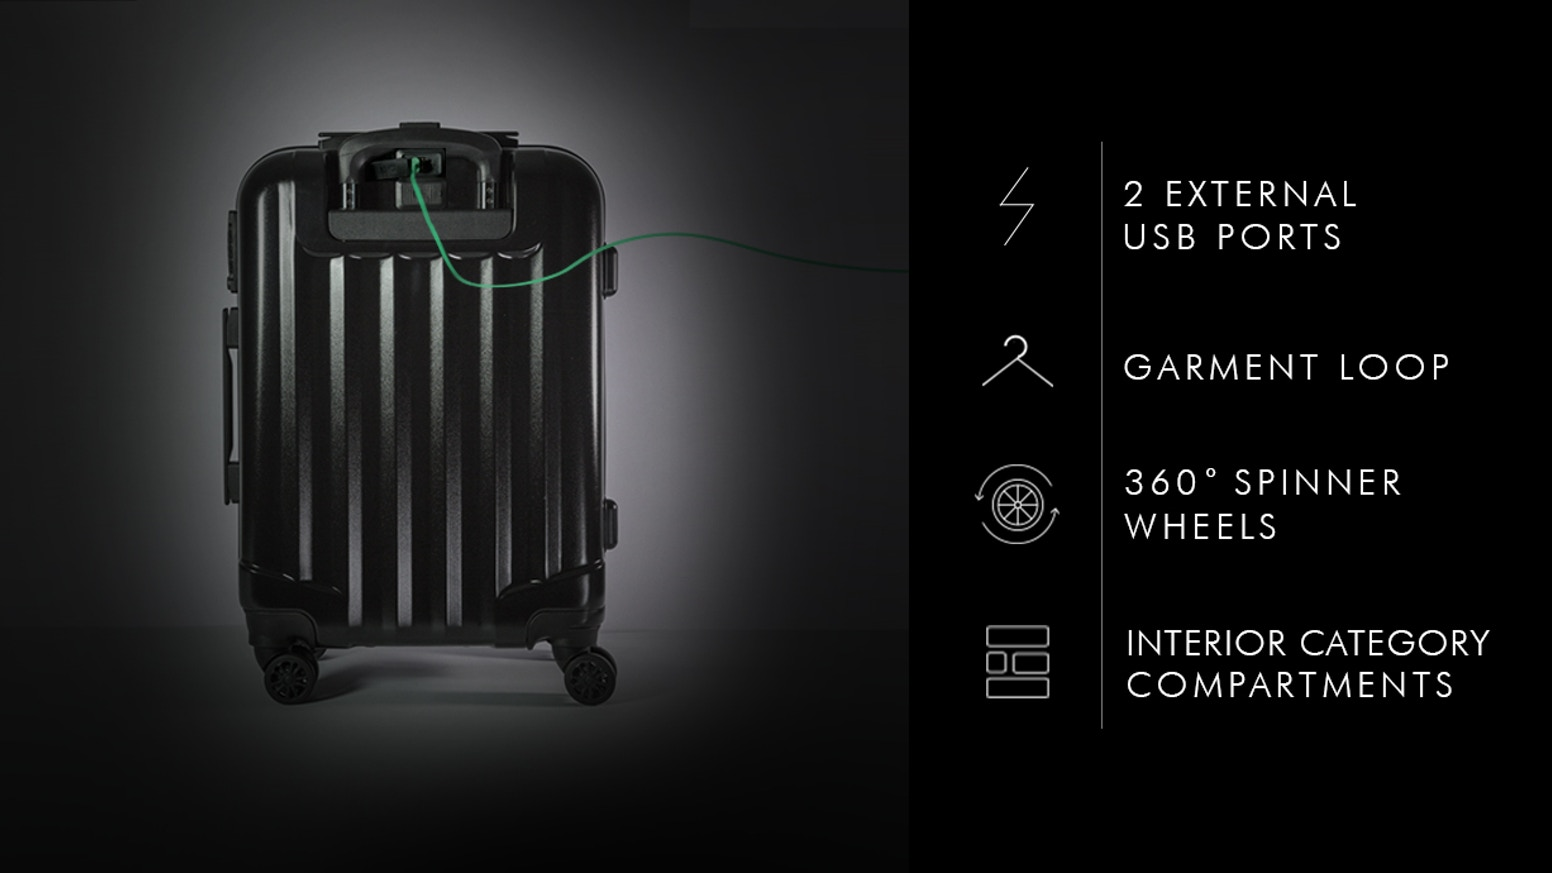 Genius Pack Supercharged: A Smarter Carry On Luggage by